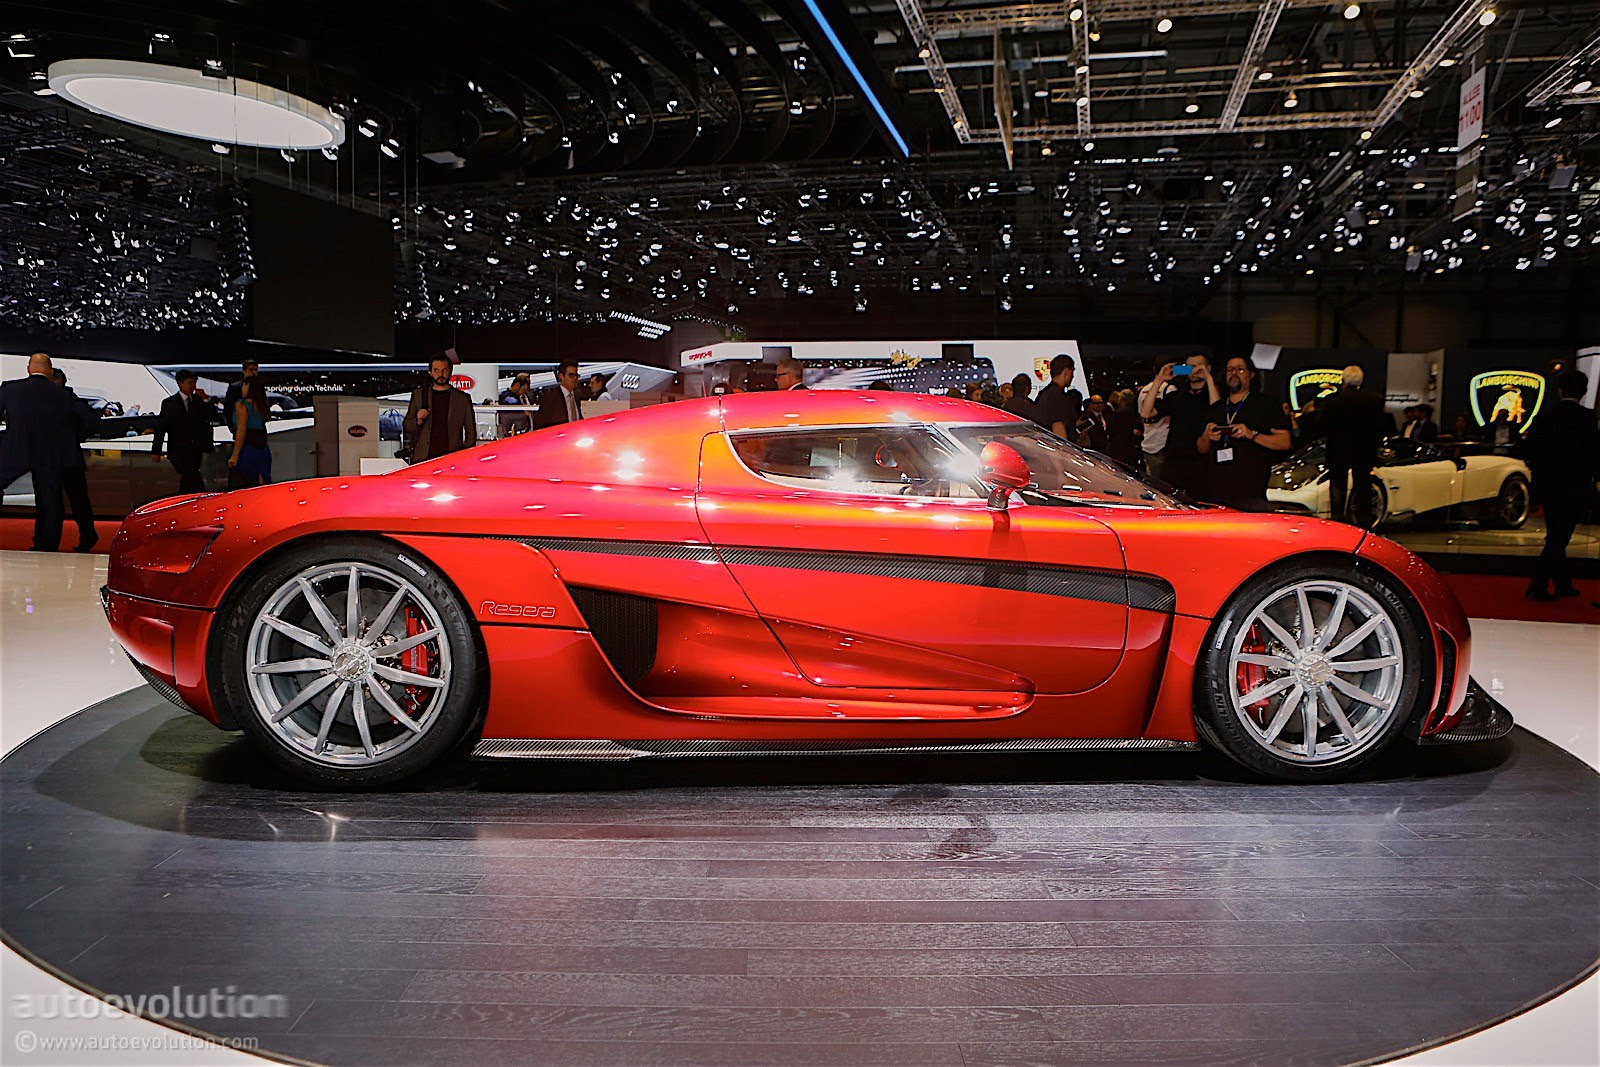 2016 Koenigsegg Regera Dealer 2017 Upcoming Cars News